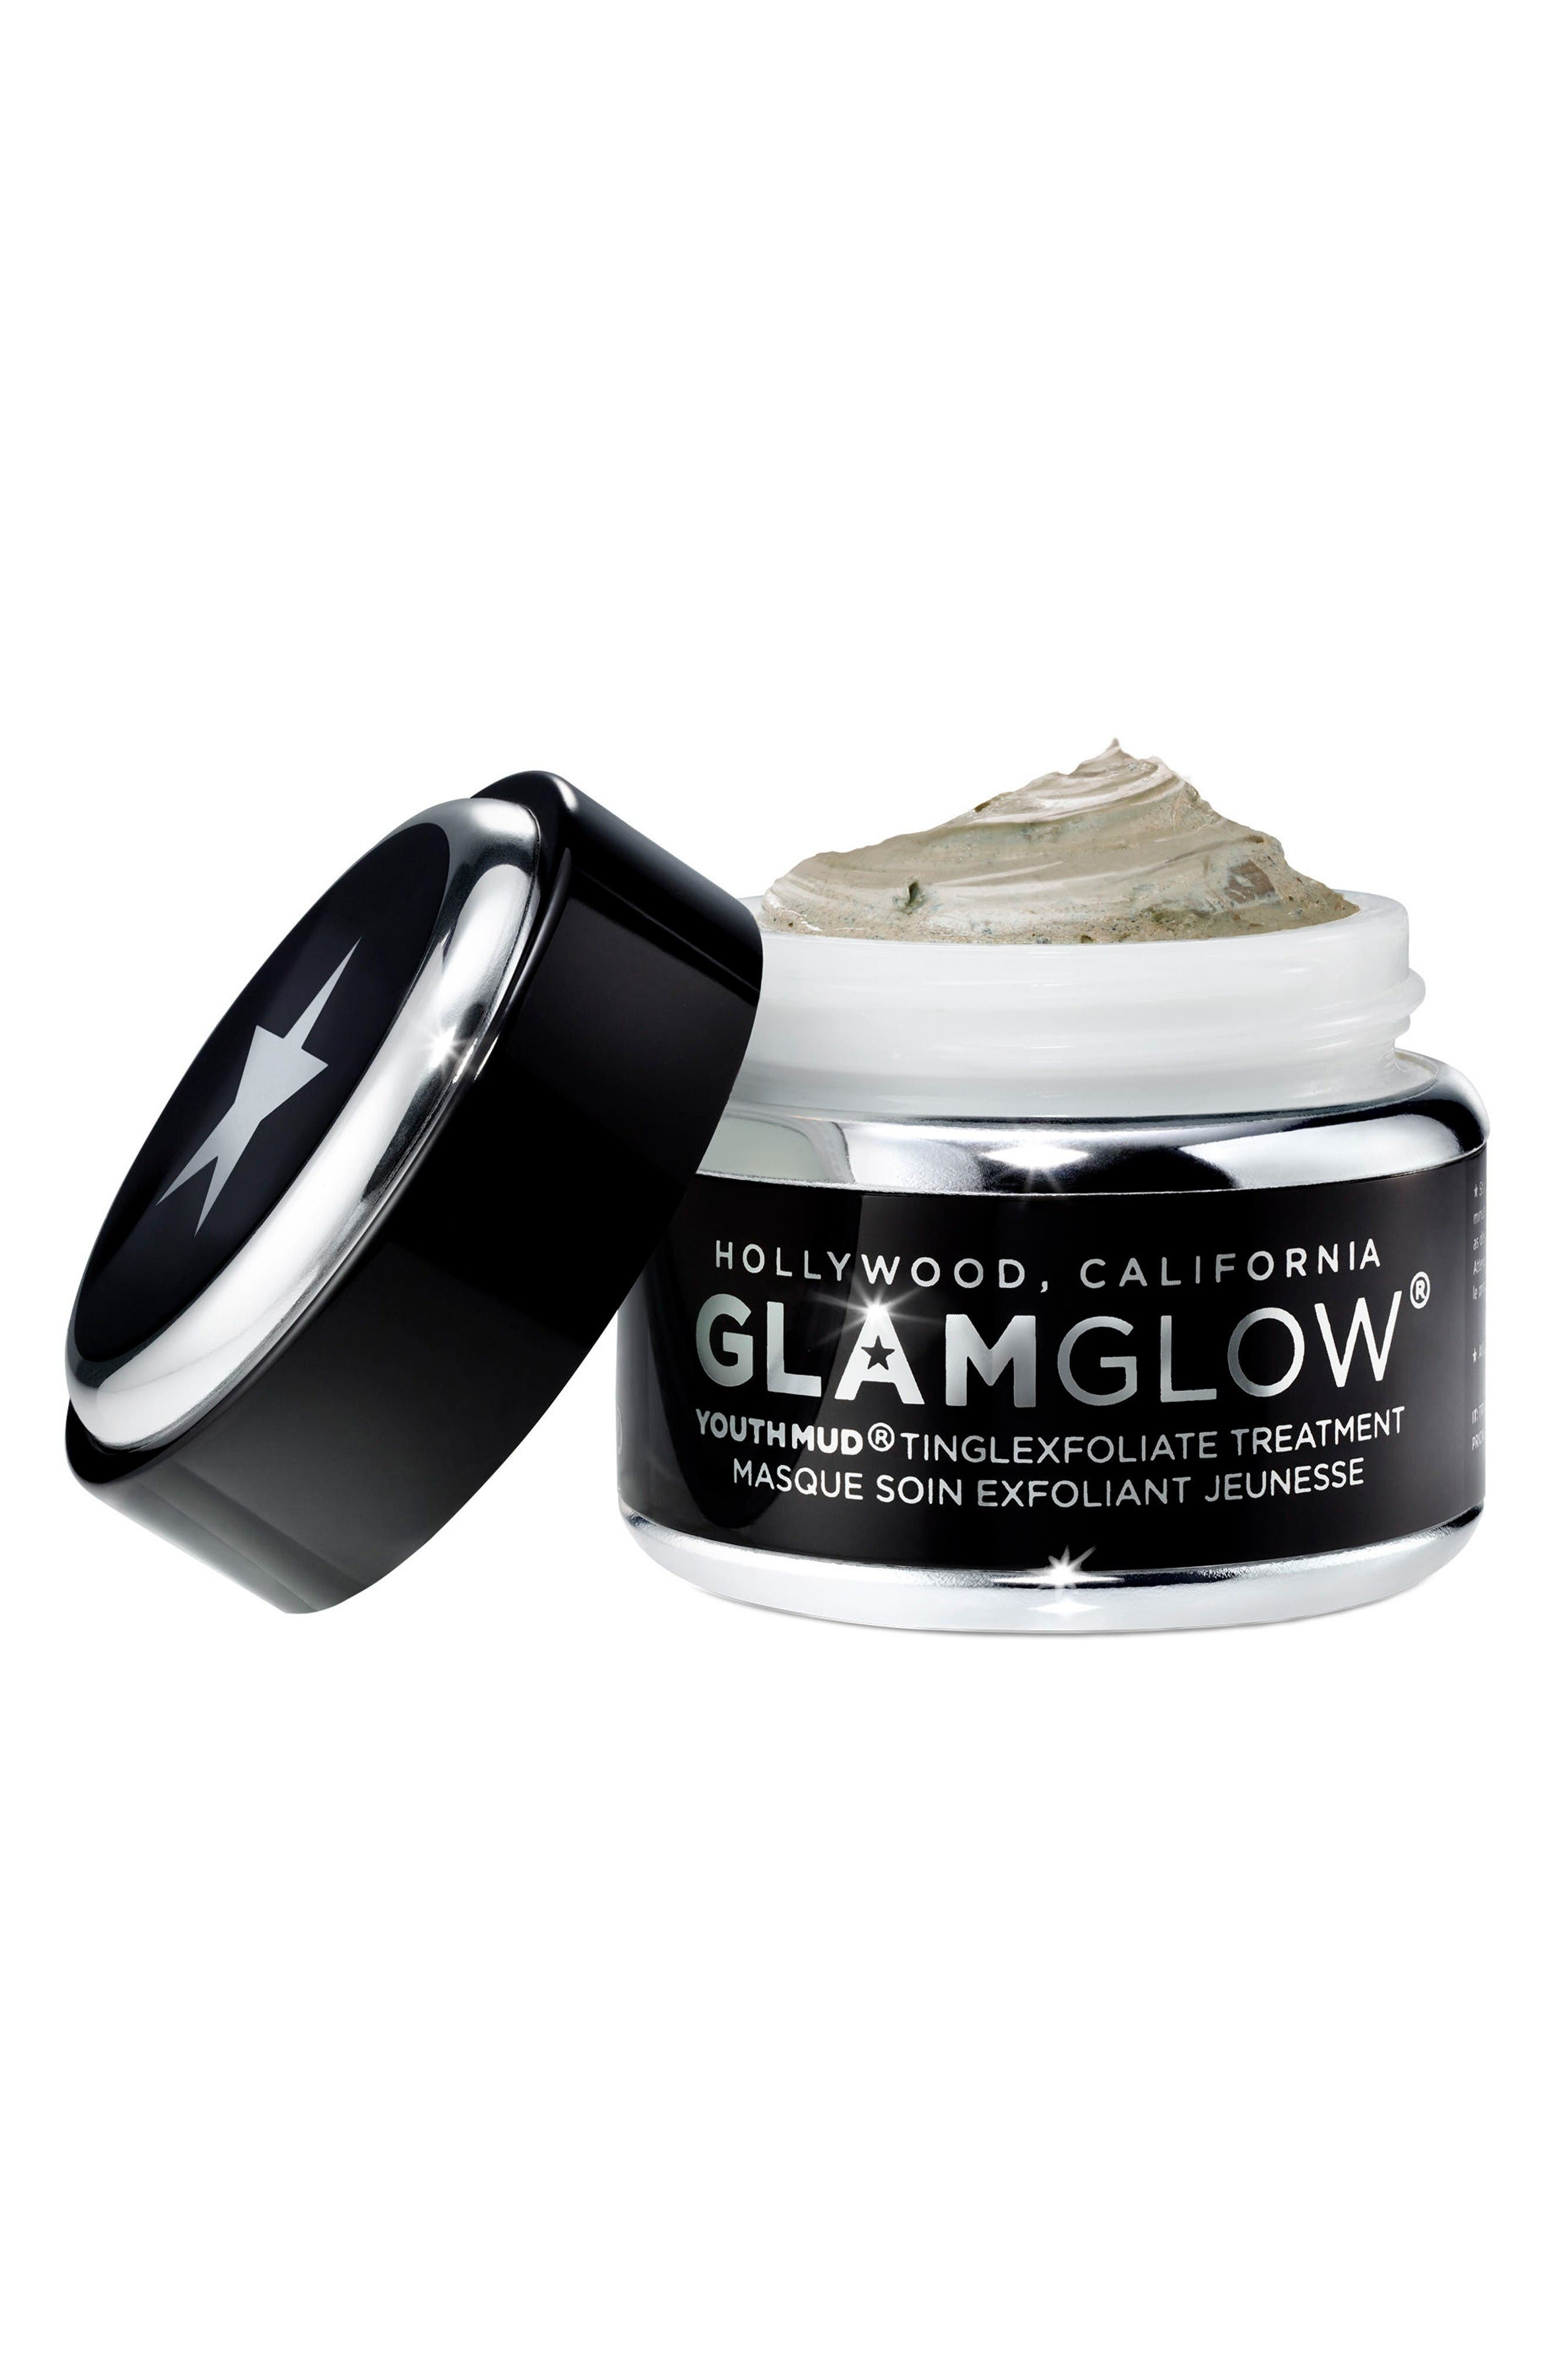 GLAMGLOW® YOUTHMUD™ Tinglexfoliate Treatment